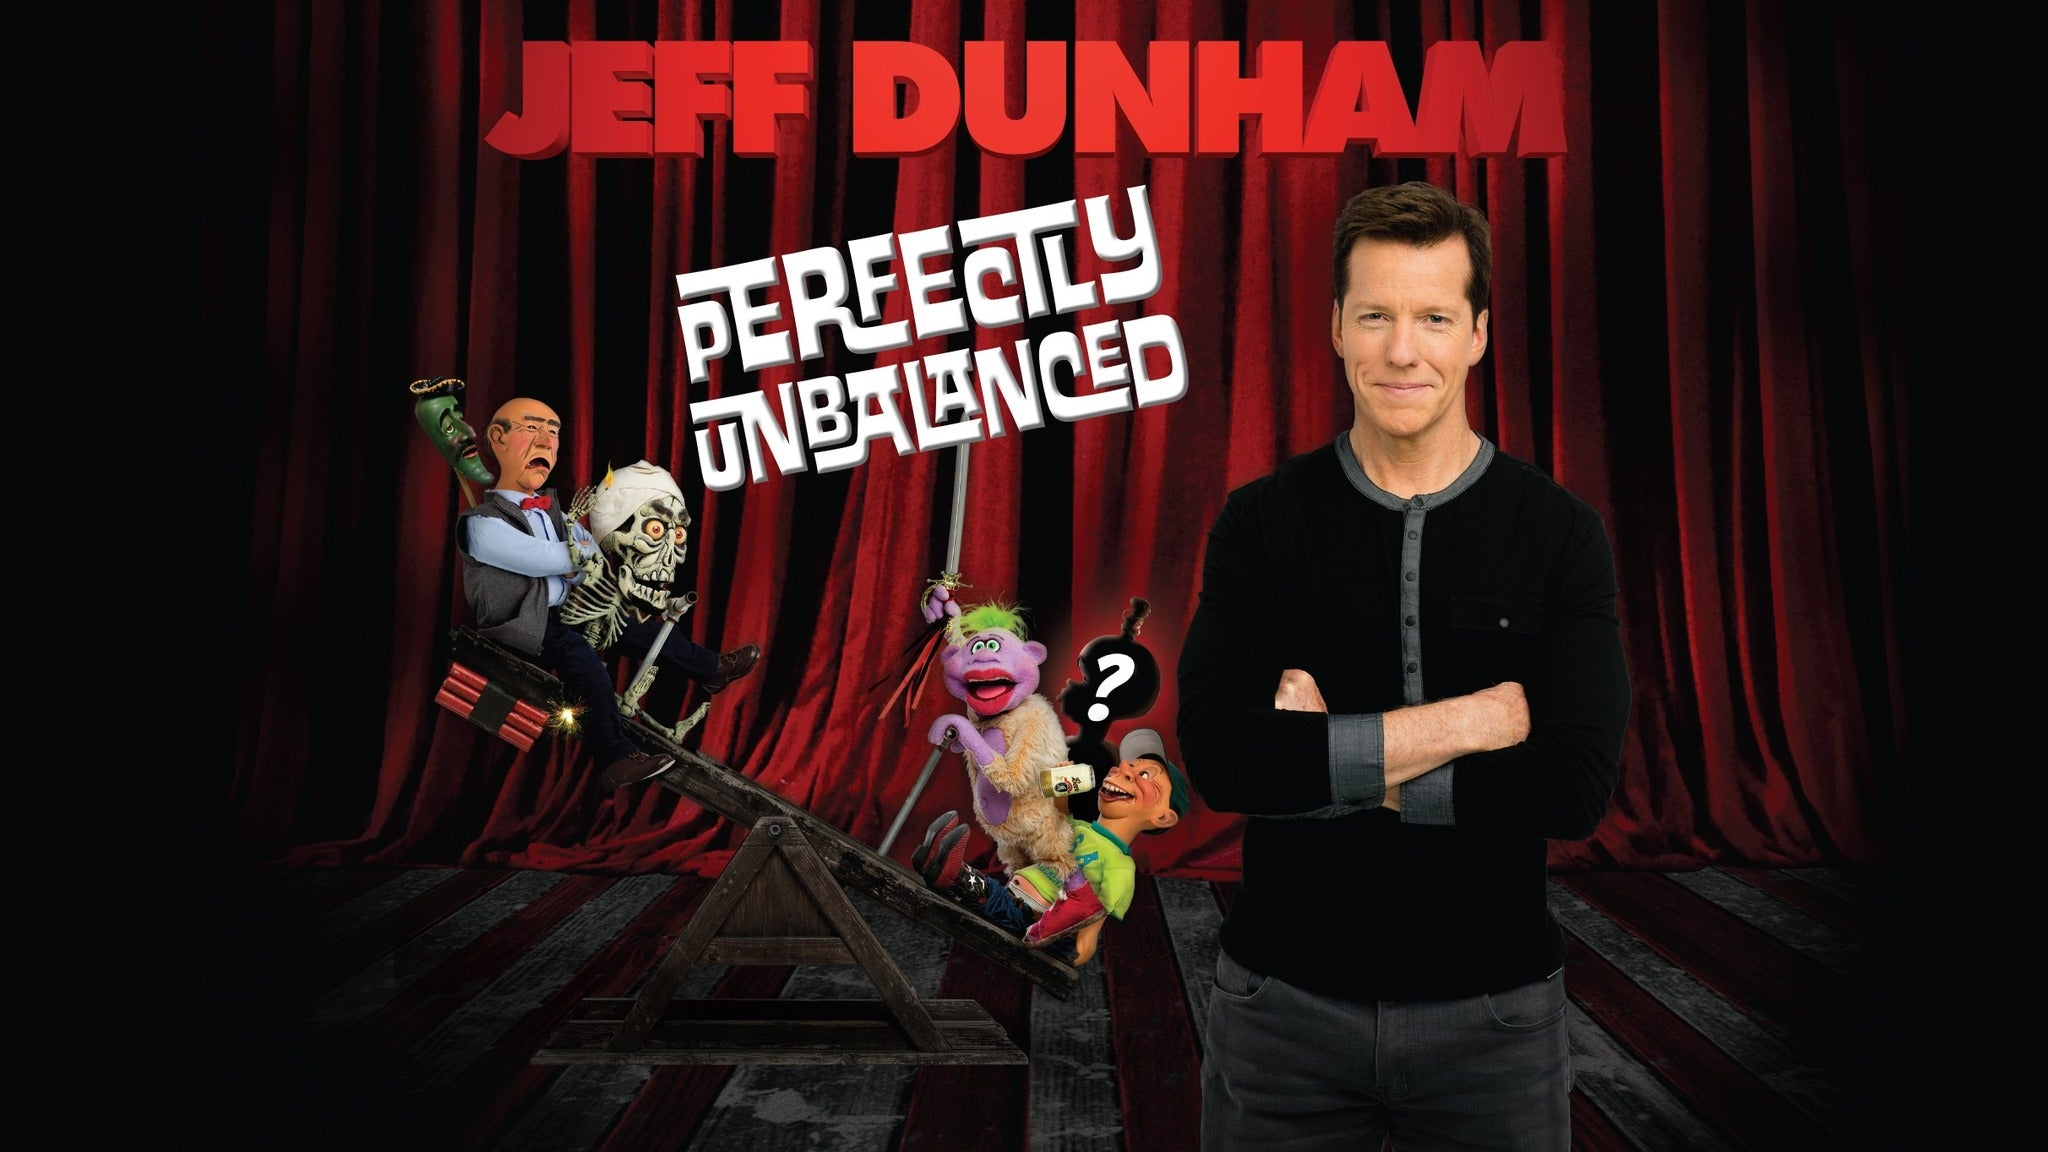 Jeff Dunham: Perfectly Unbalanced at iWireless Center